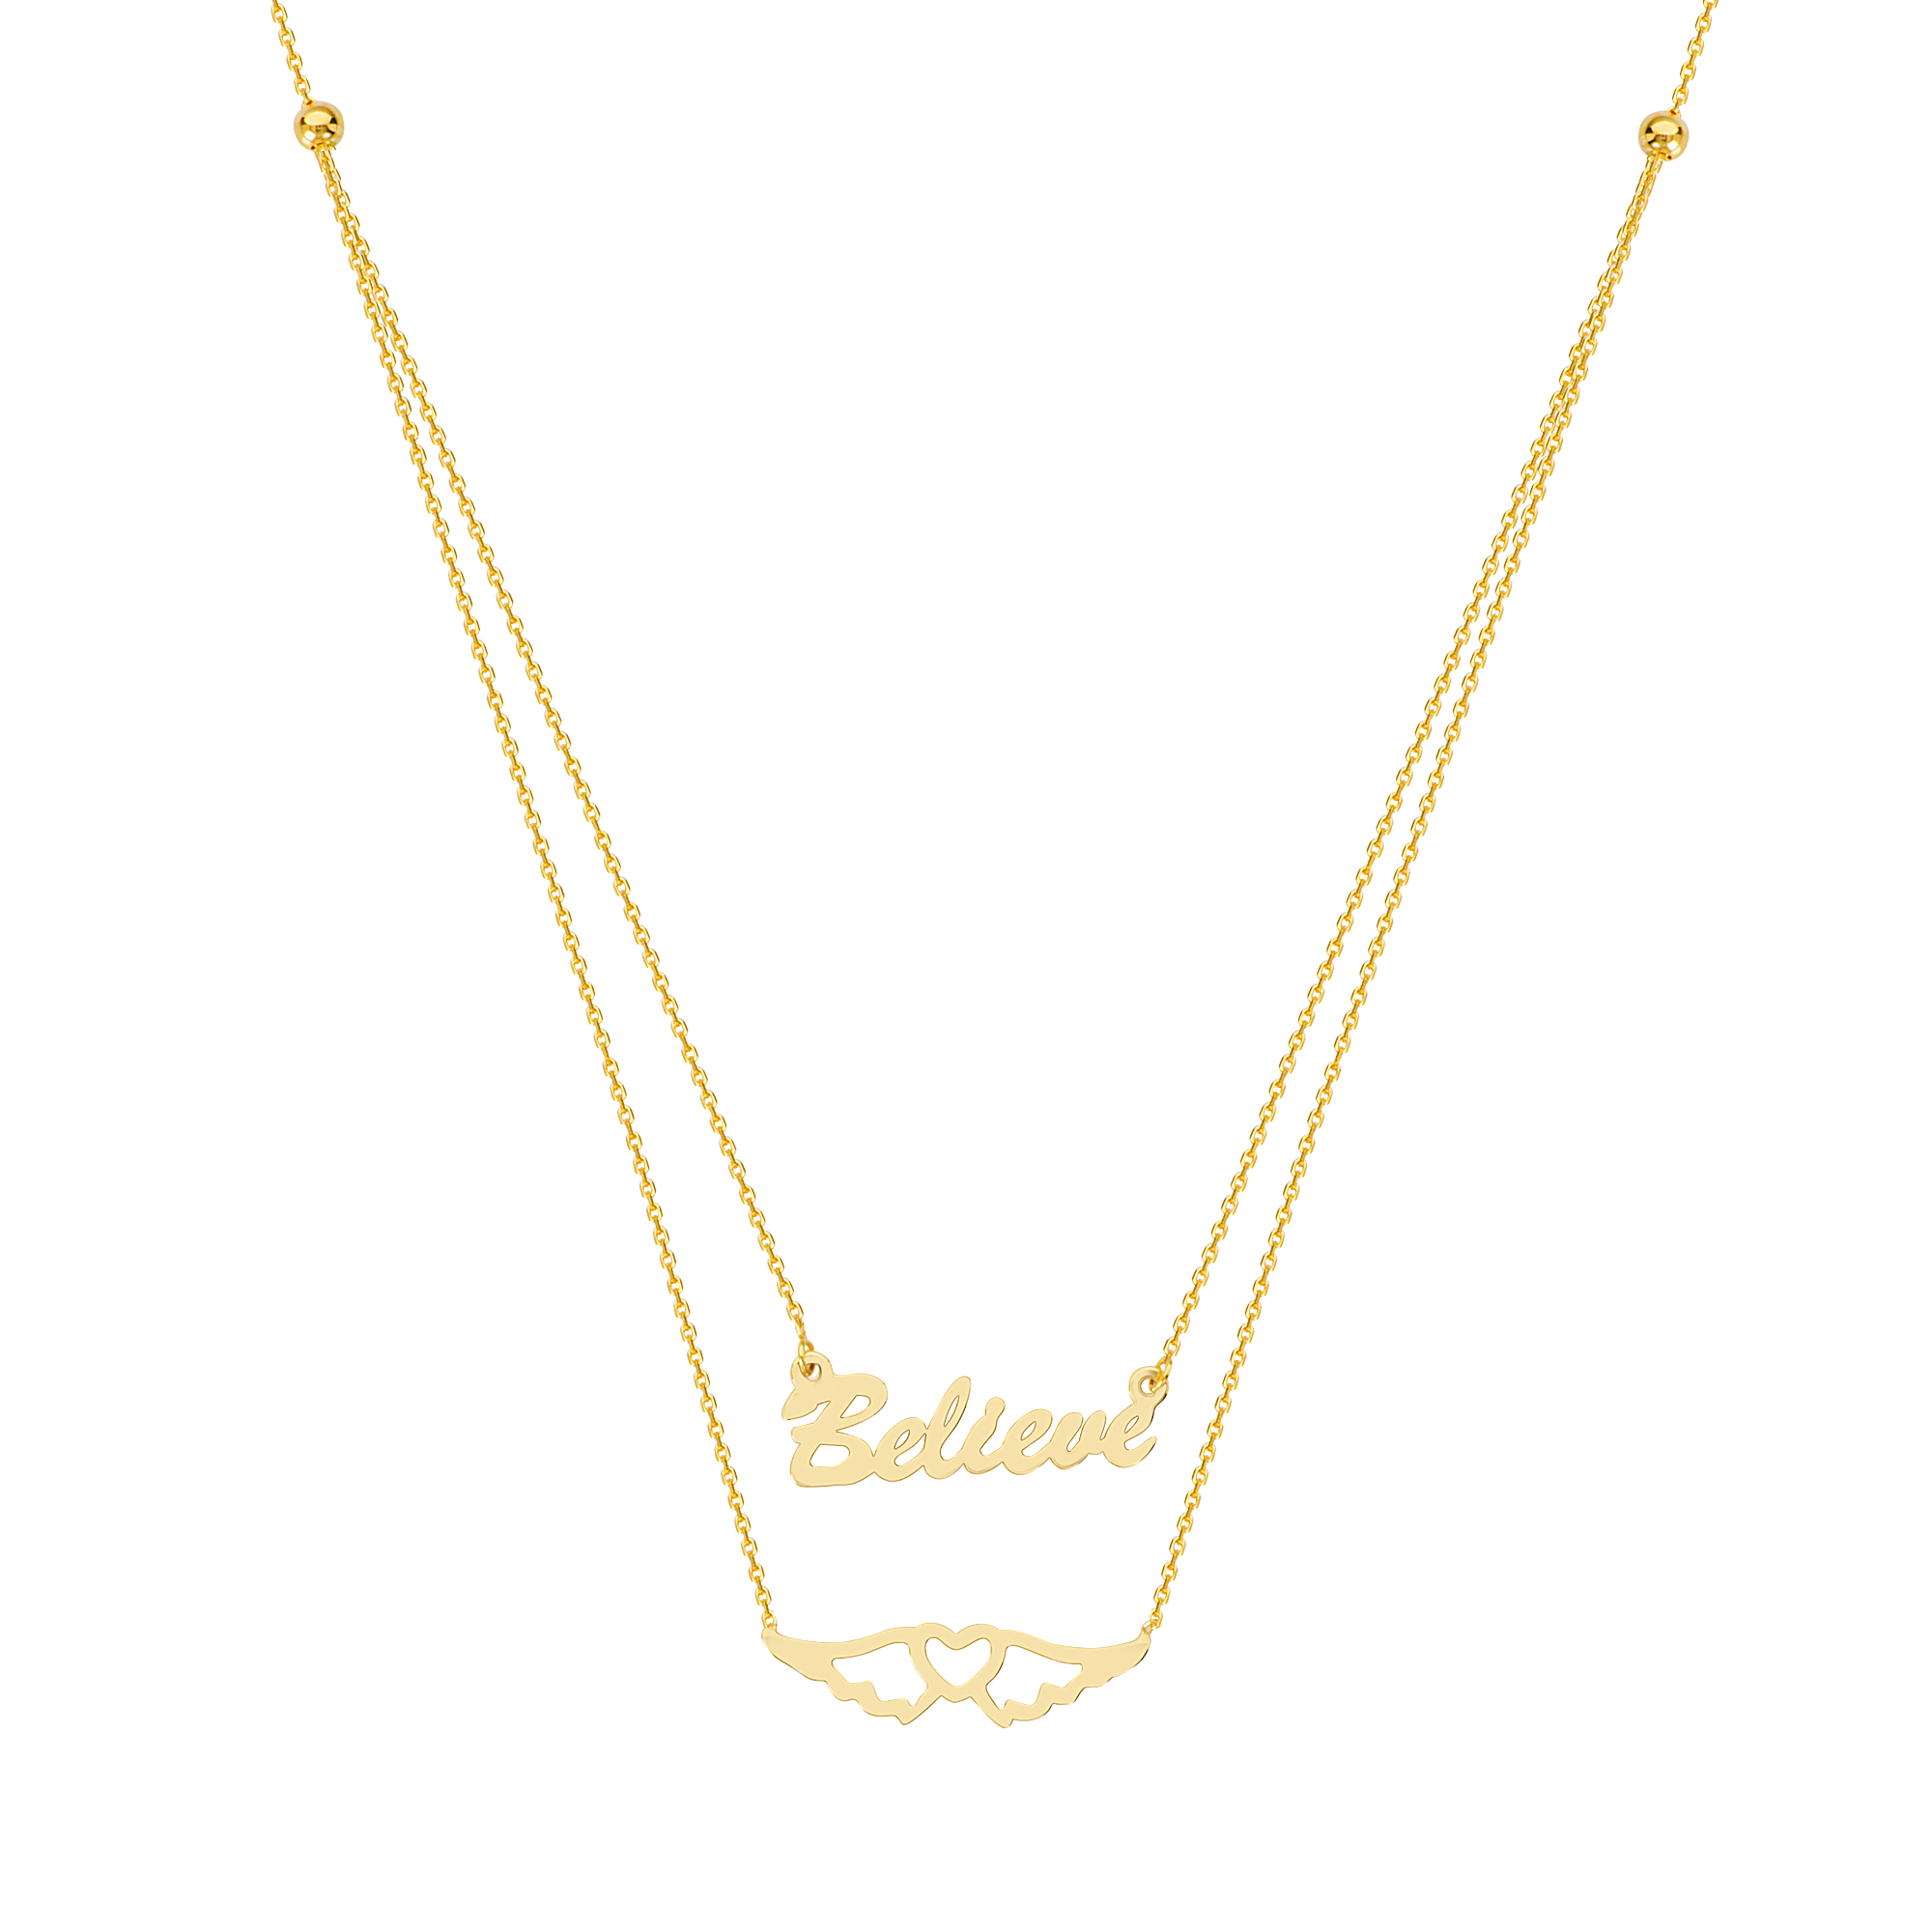 Believe In Your Journey Necklace, 14Kt Gold   18